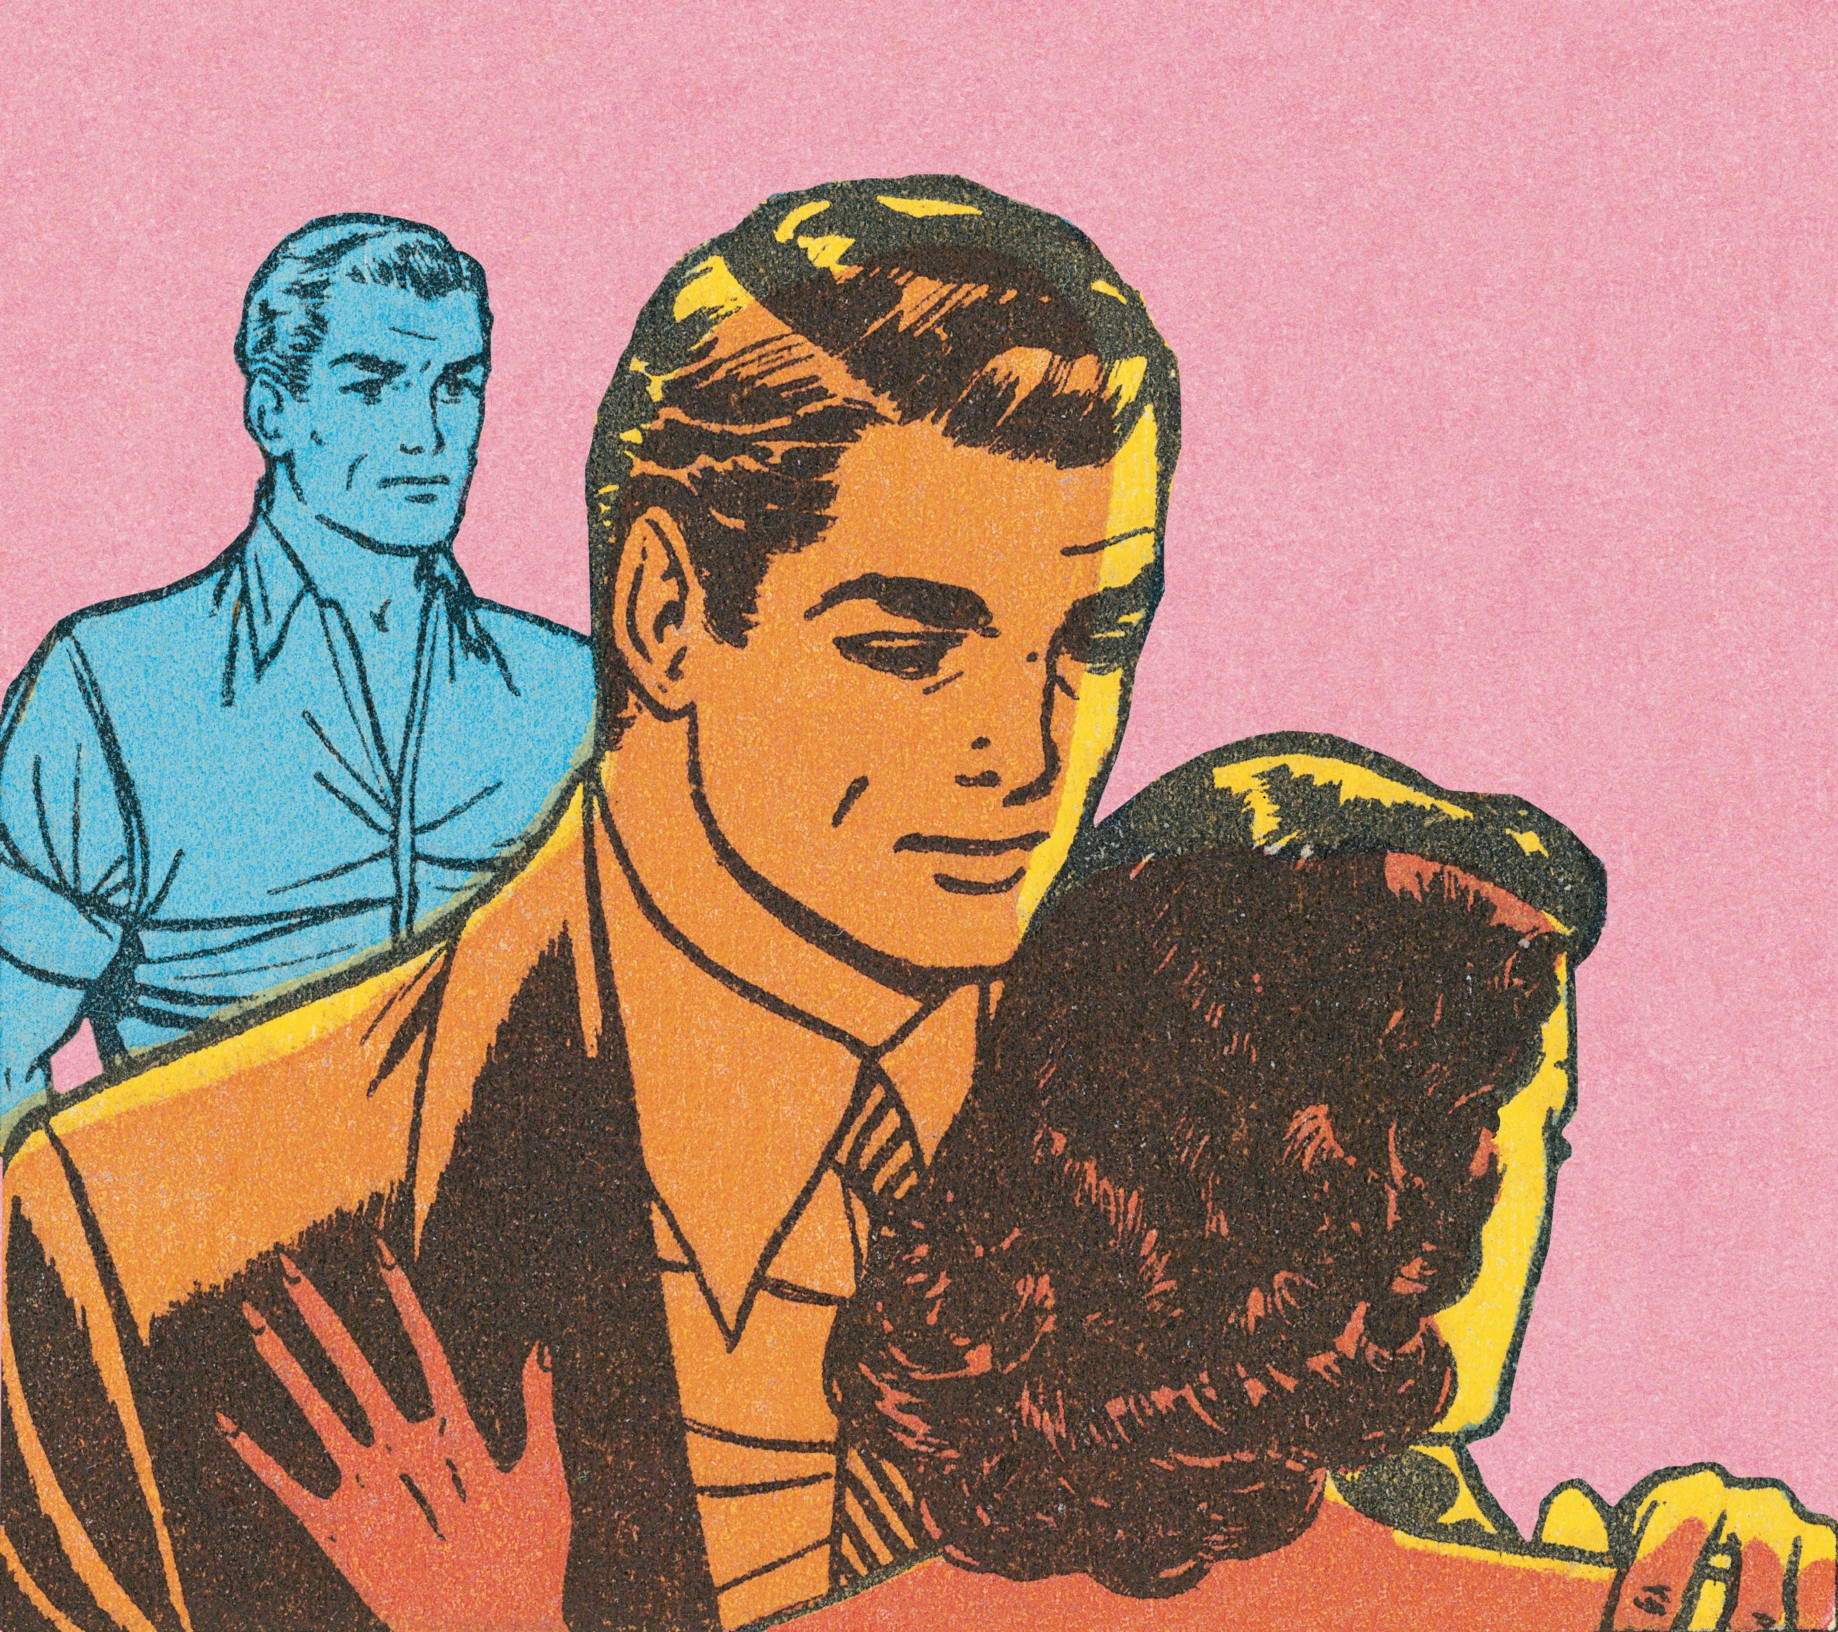 I Went on Ashley Madison to Try to Have an Affair - The Cut - Medium